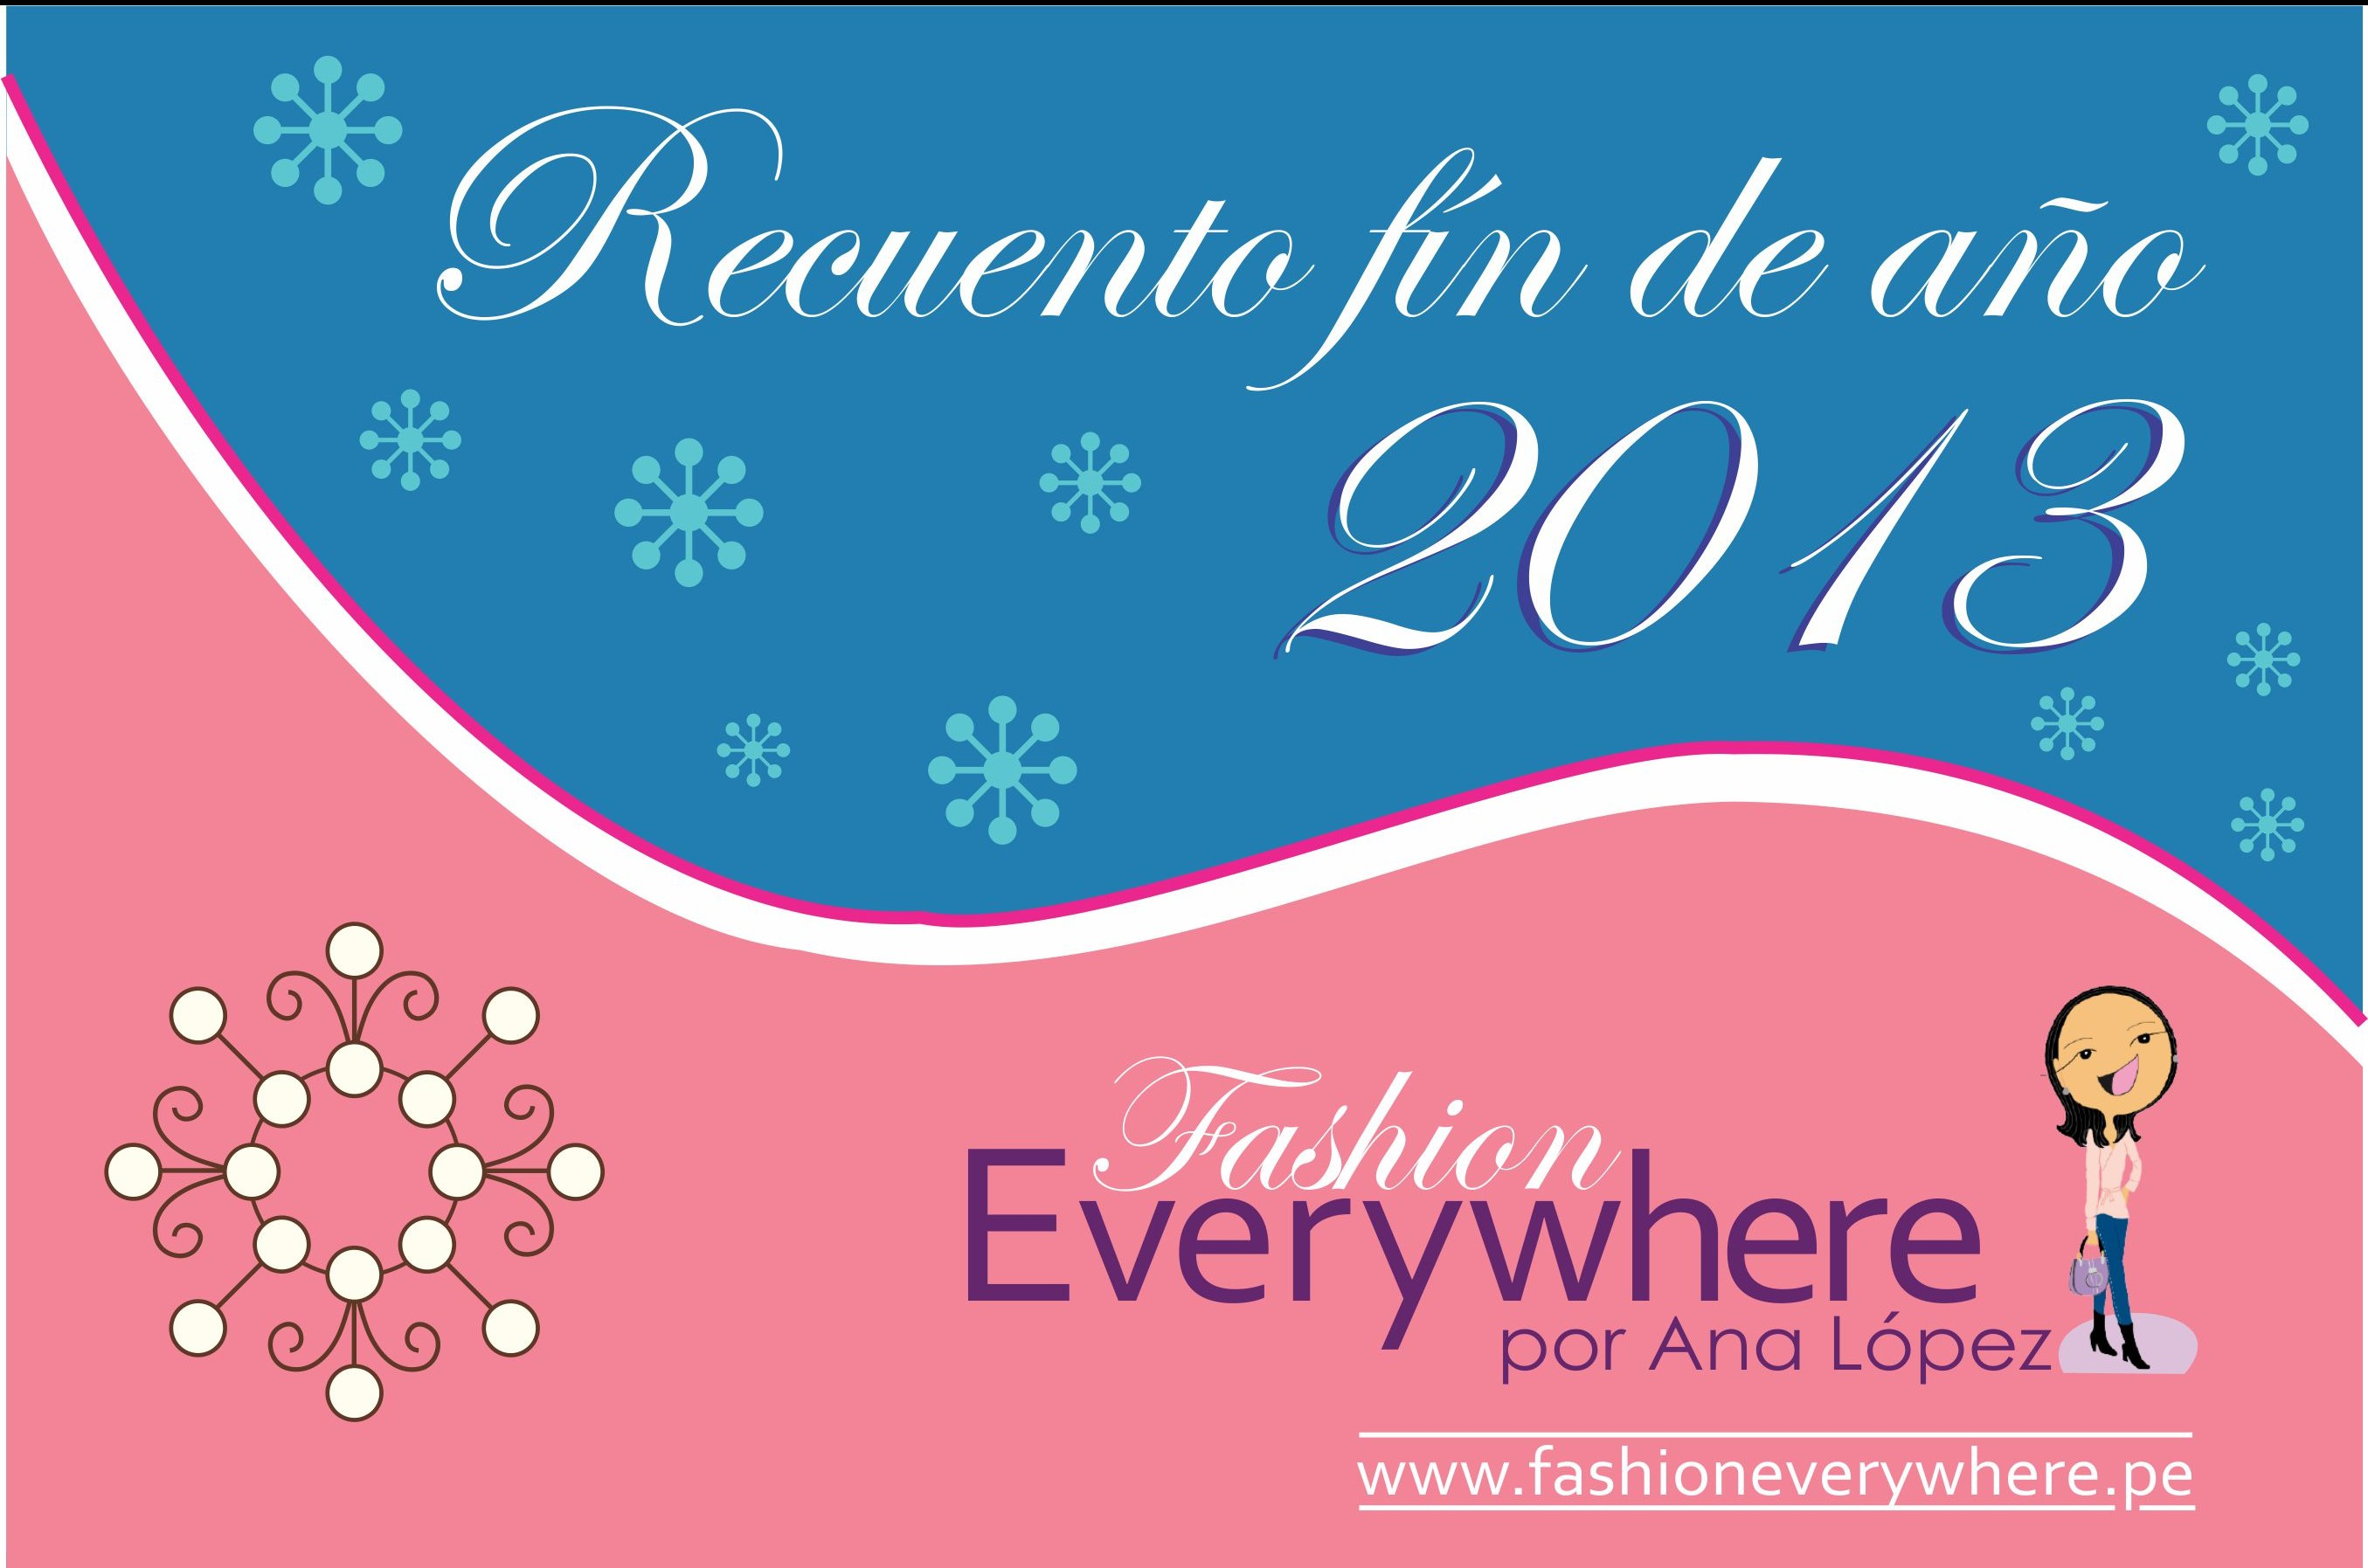 Ana_López_fashion_blogger_Fashion_Everywhere_www.fashioneverywhere.pe_1